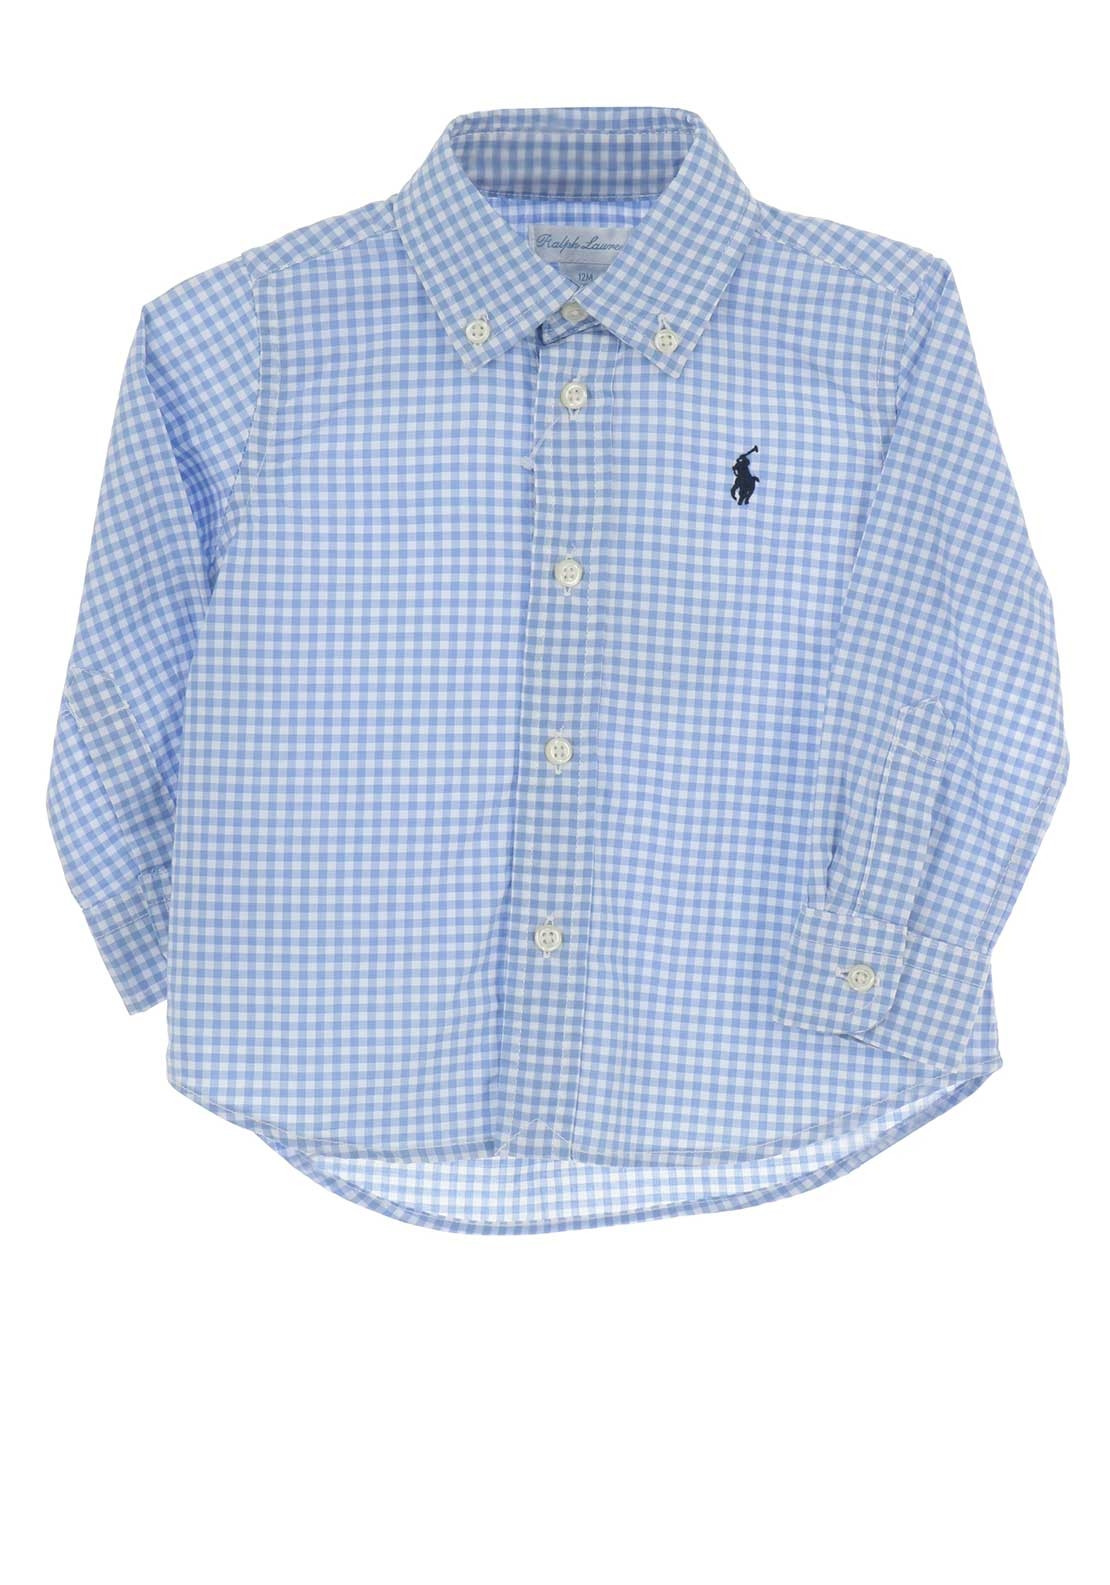 e160006f0 Ralph Lauren Baby Boys Gingham Shirt, Blue. Be the first to review this  product